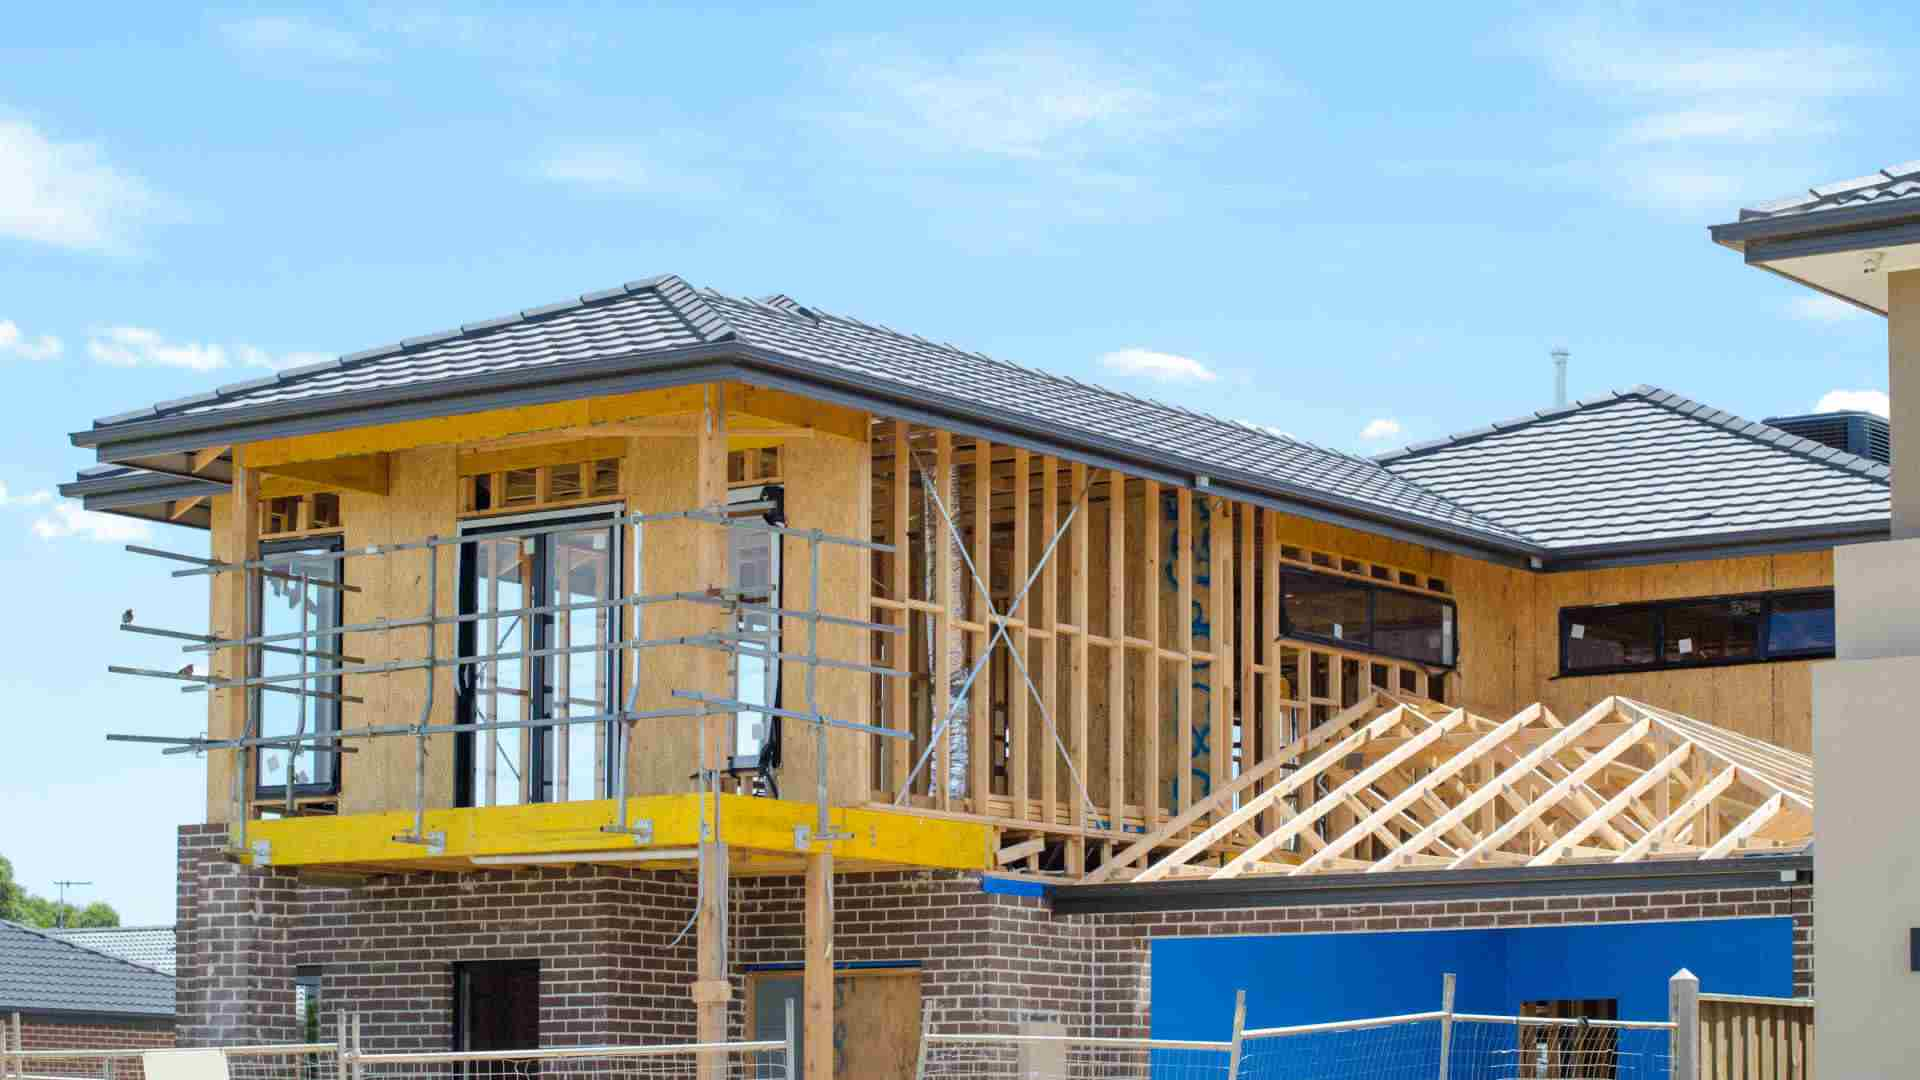 Building boom looks set to march past HomeBuilder expiry